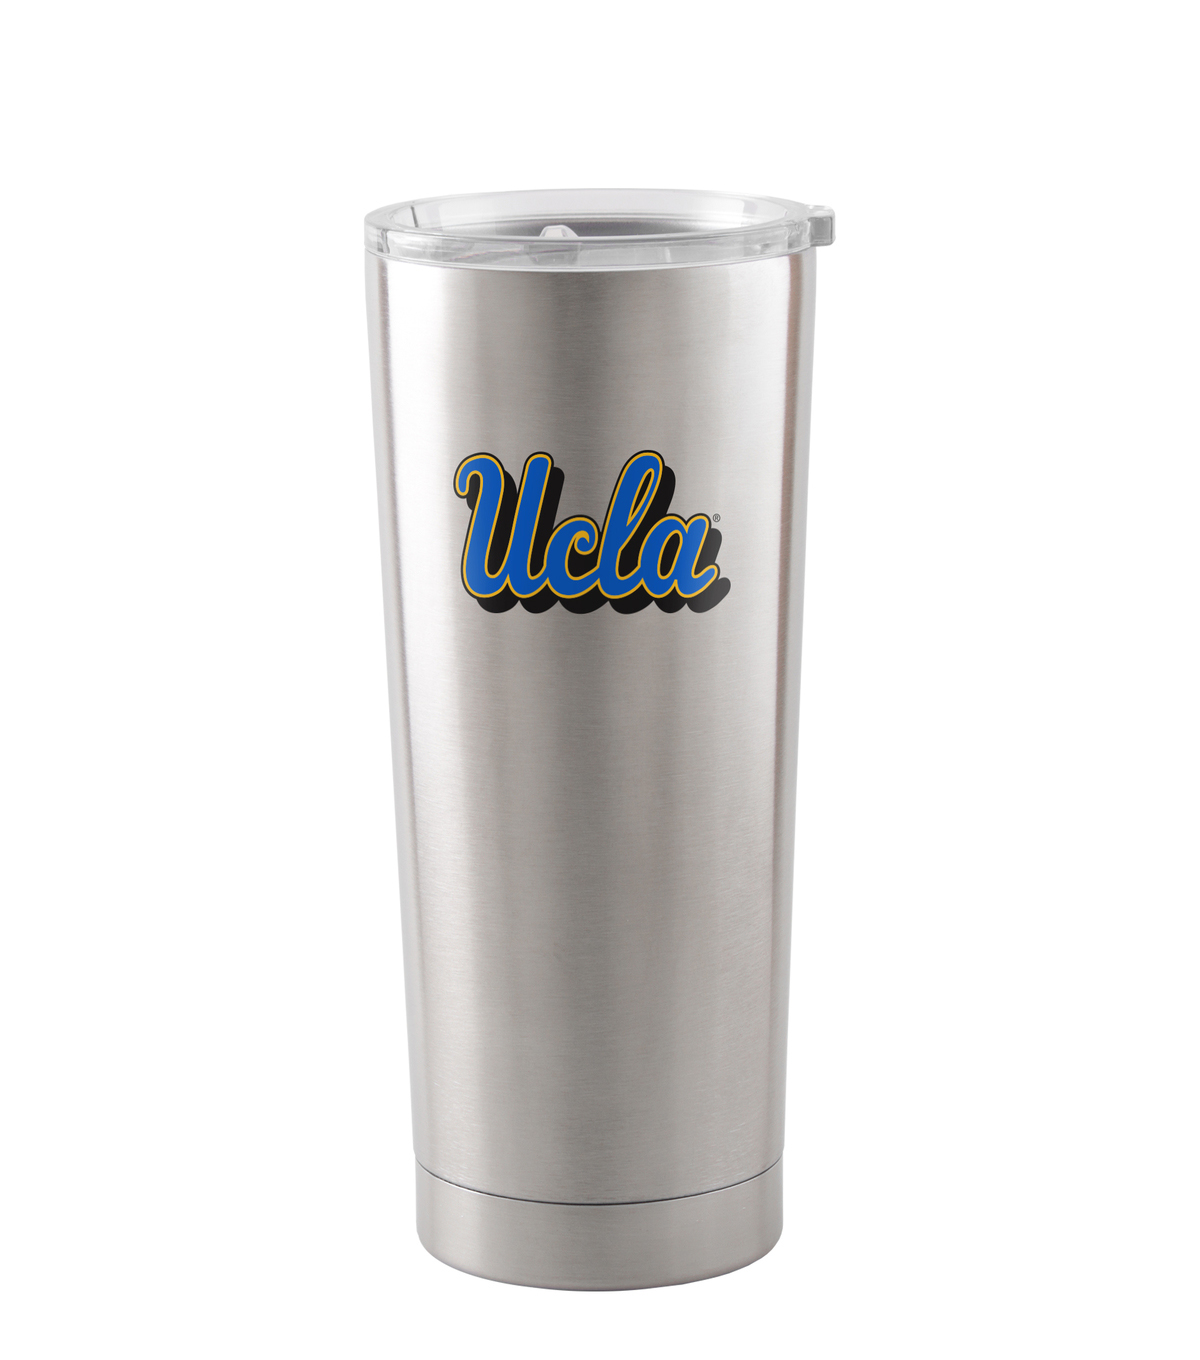 UCLA Bruins 20 oz Insulated Stainless Steel Tumbler